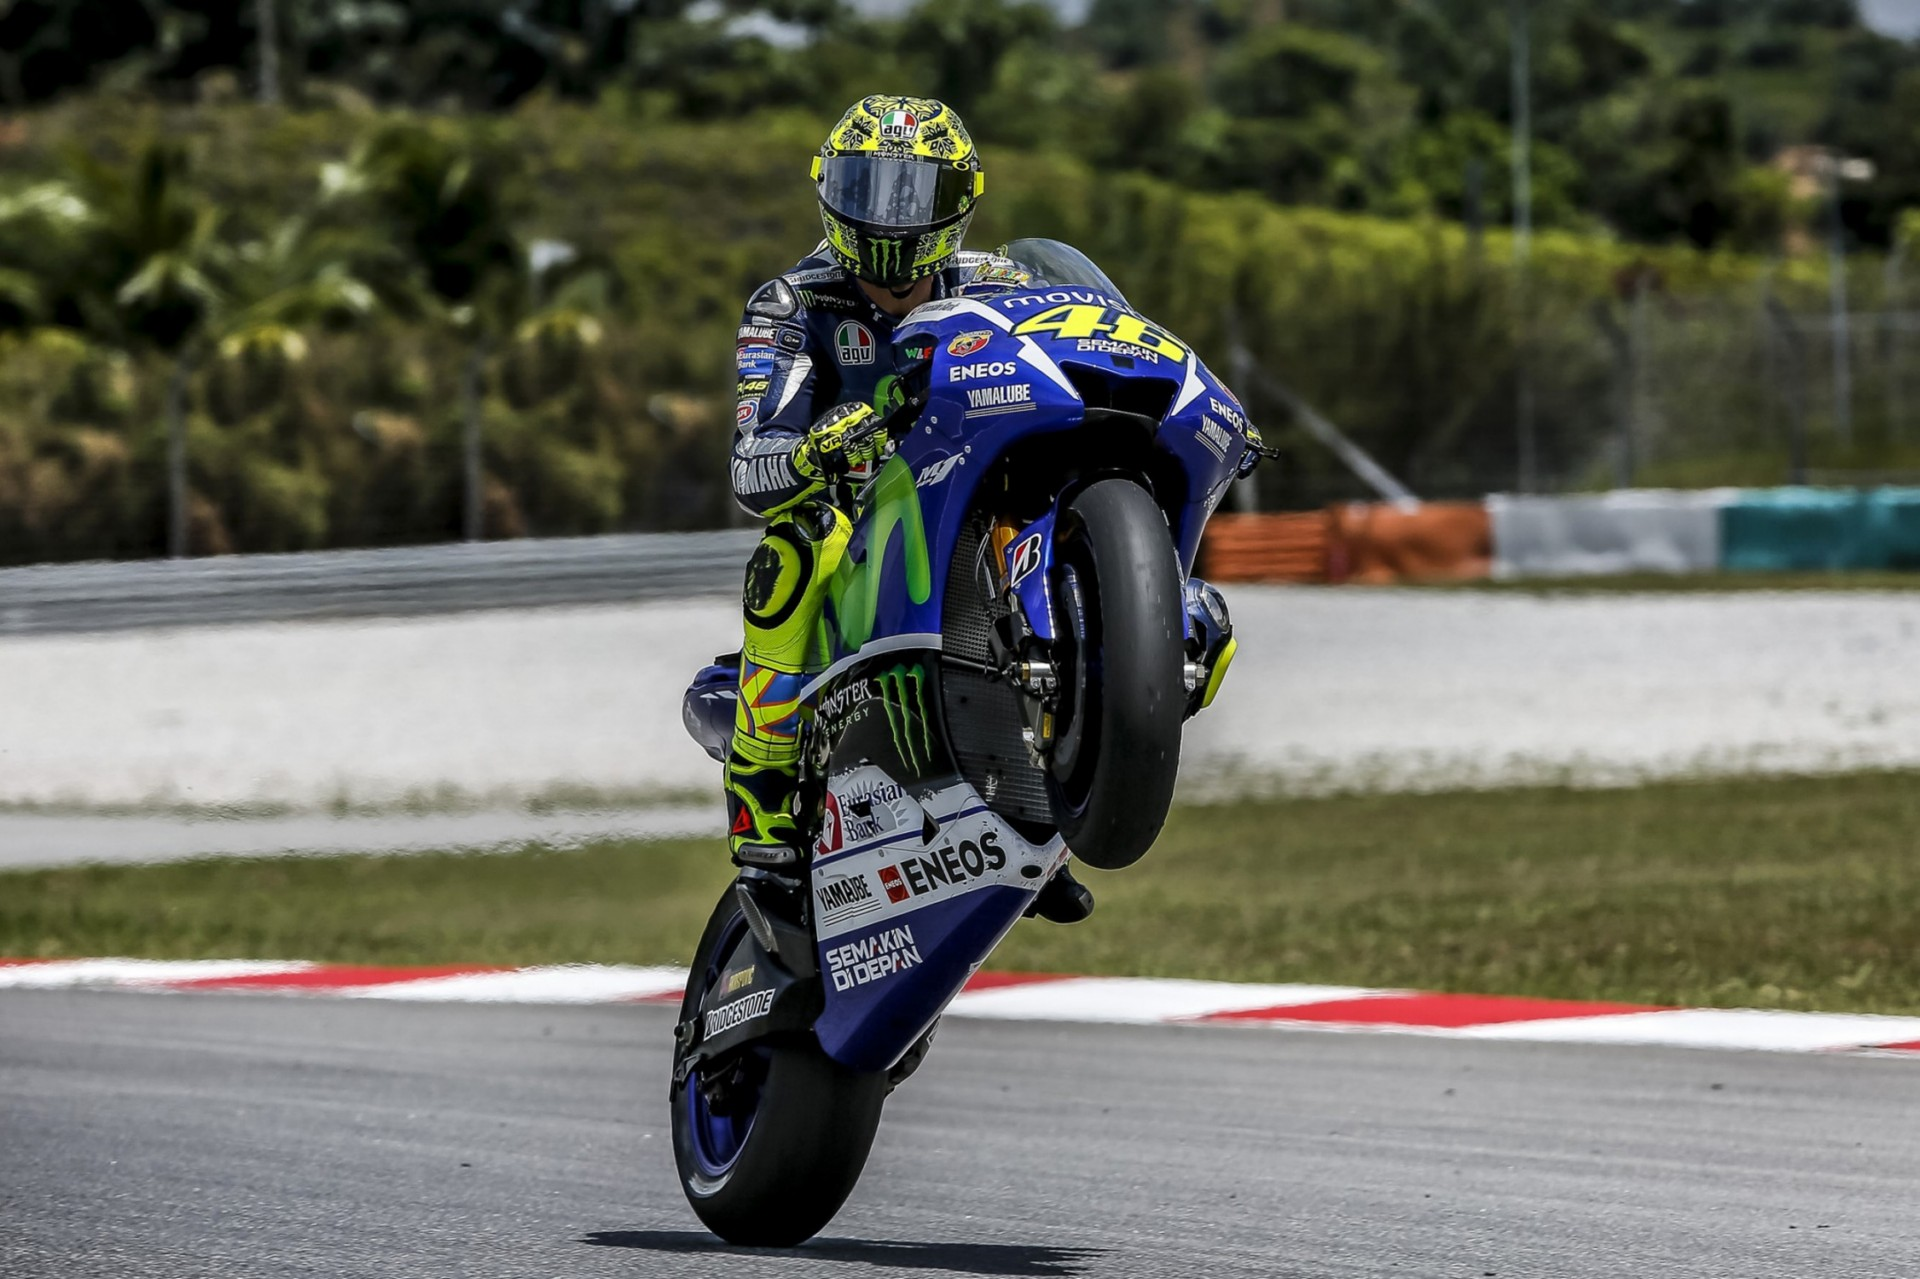 Vr46 Wallpaper Hd Valentino Rossi I Want The Title Linda And A Son